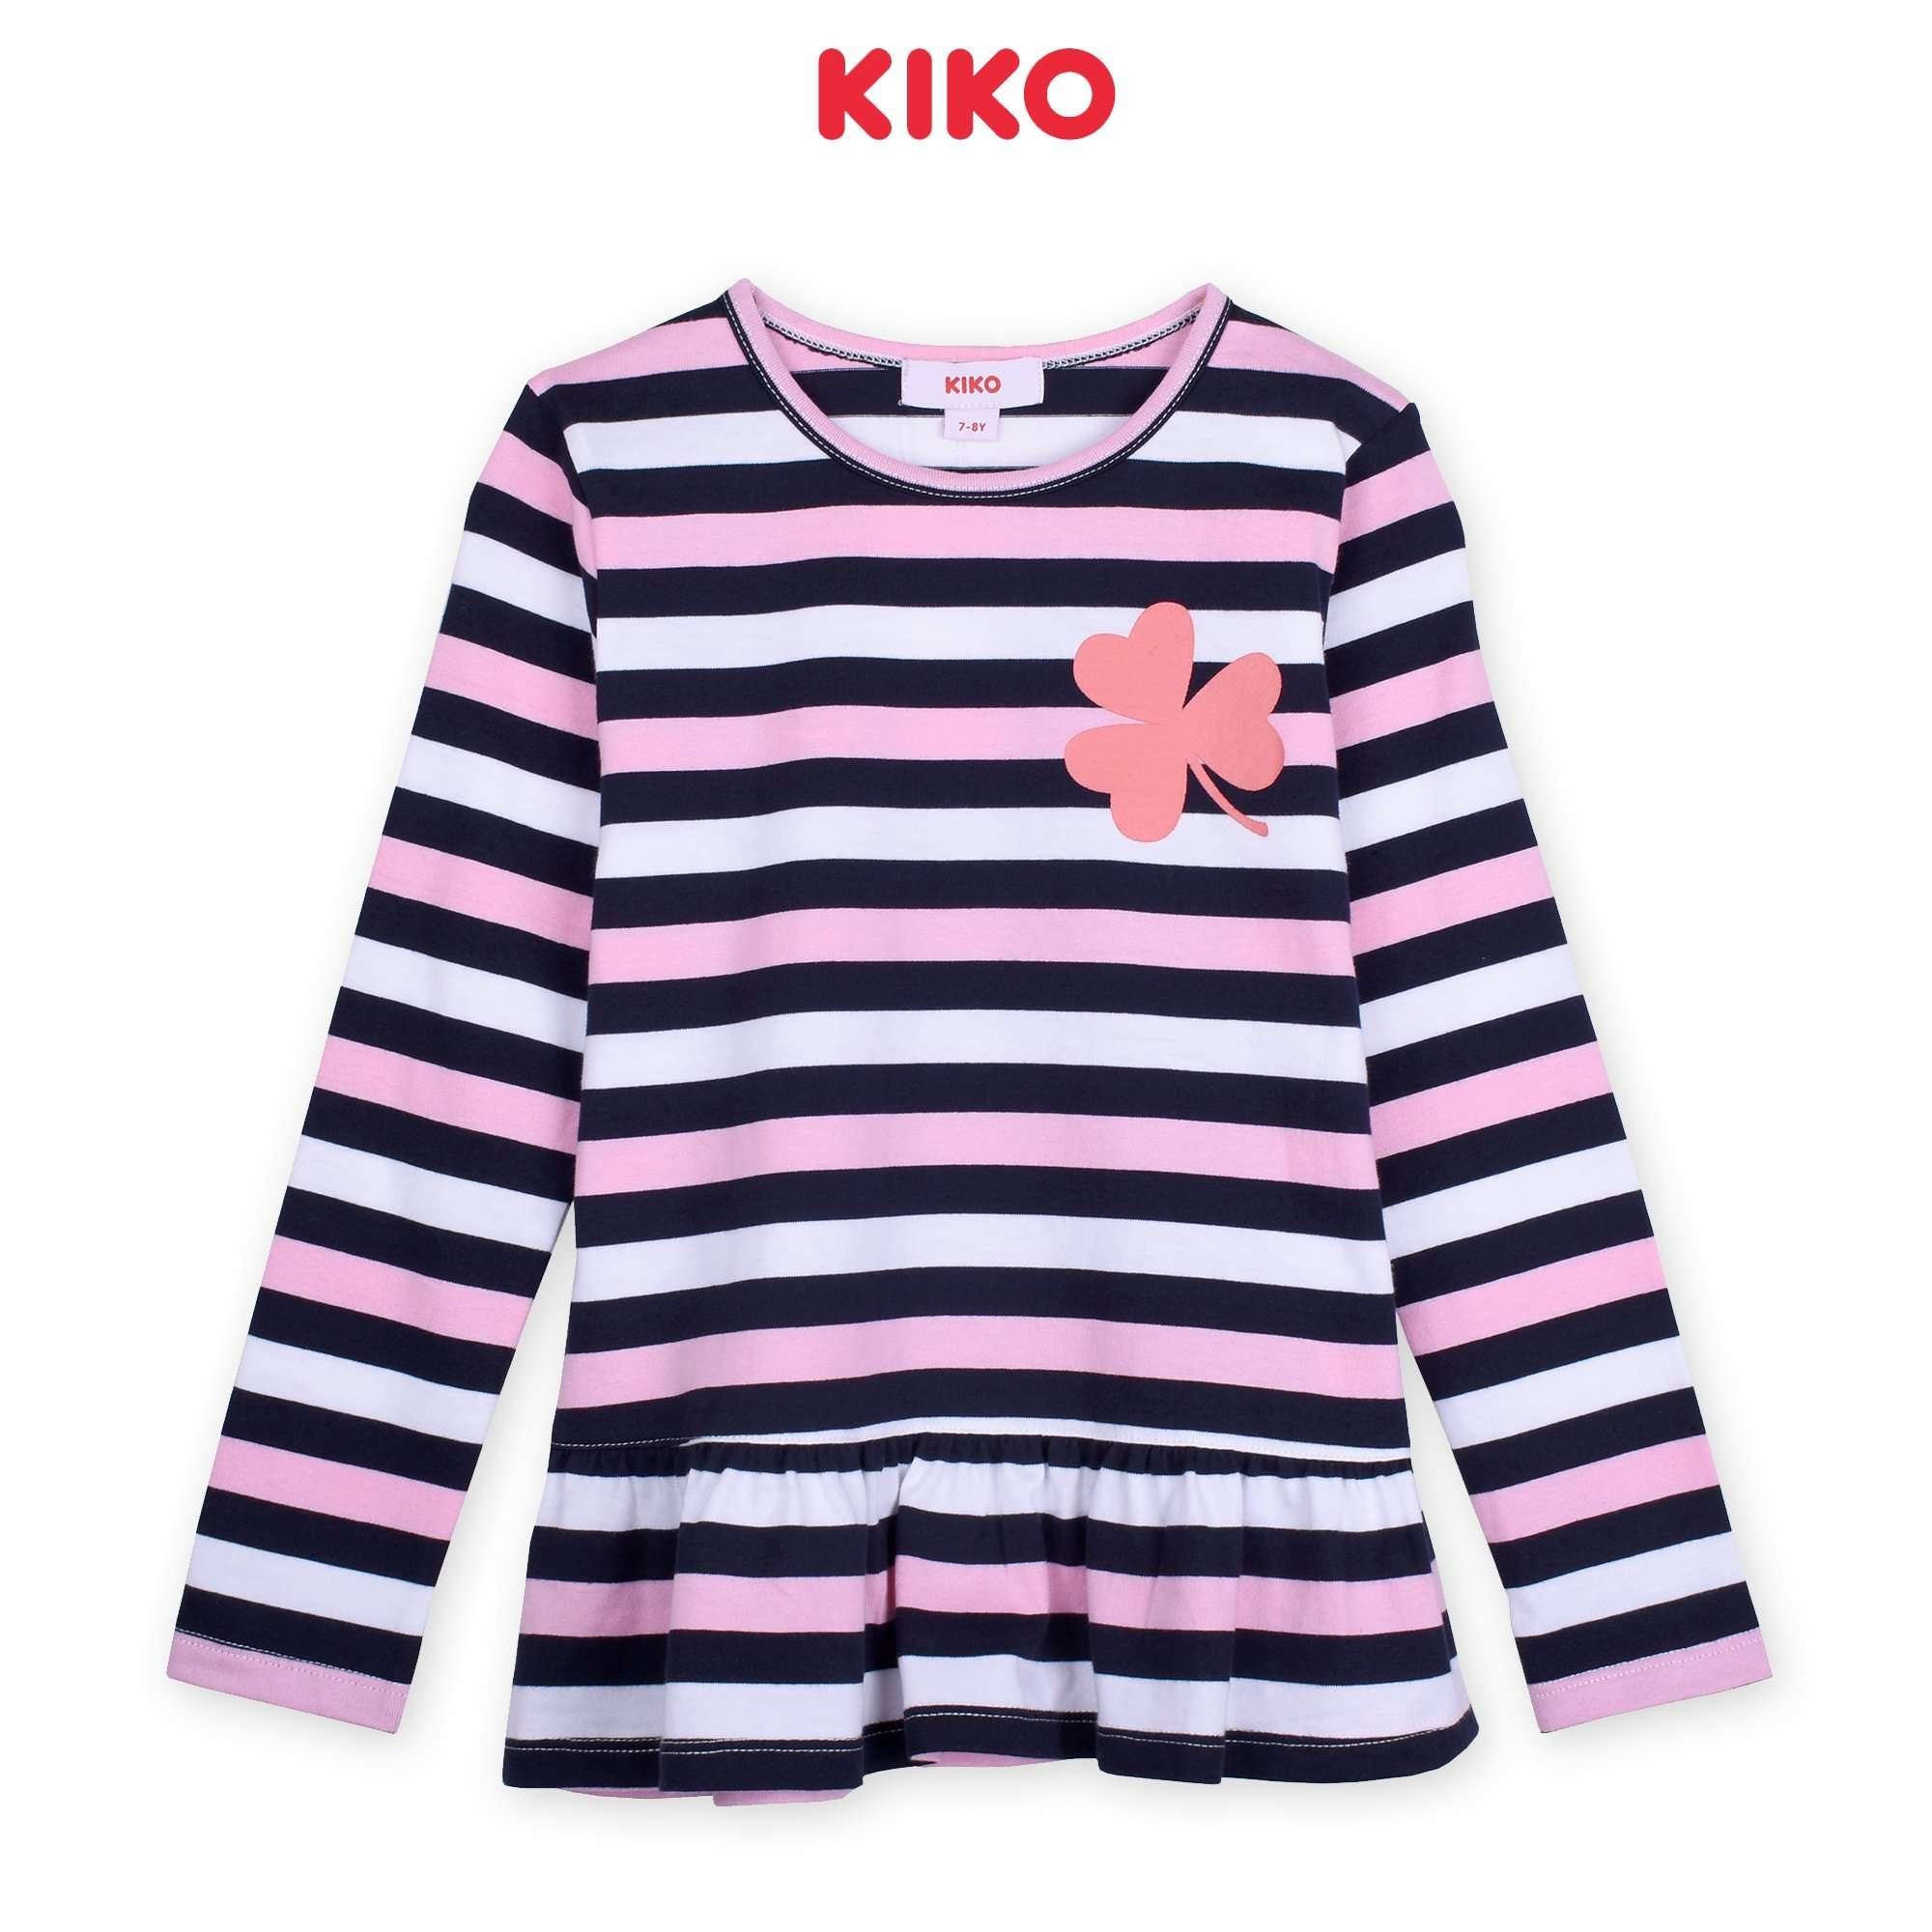 KIKO Girl Long Sleeve Tee - Cream K926103-1338-W5 : Buy KIKO online at CMG.MY